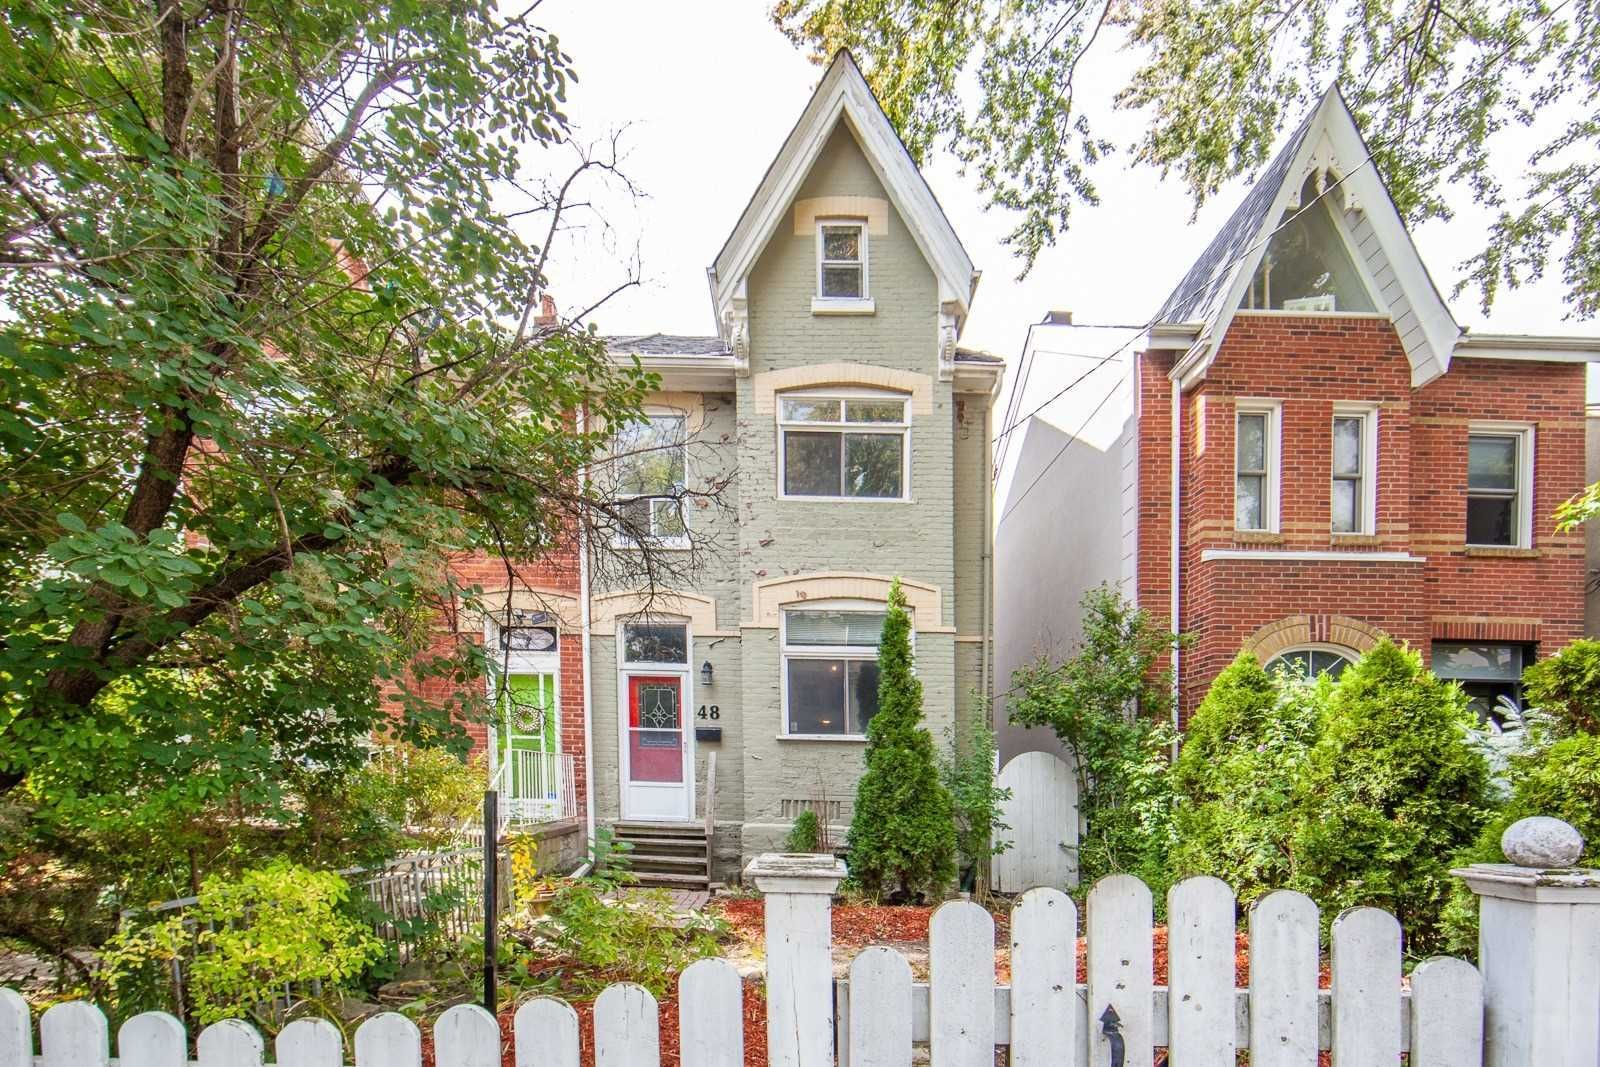 Main Photo: 48 Saulter Street in Toronto: South Riverdale House (2 1/2 Storey) for sale (Toronto E01)  : MLS®# E4933195